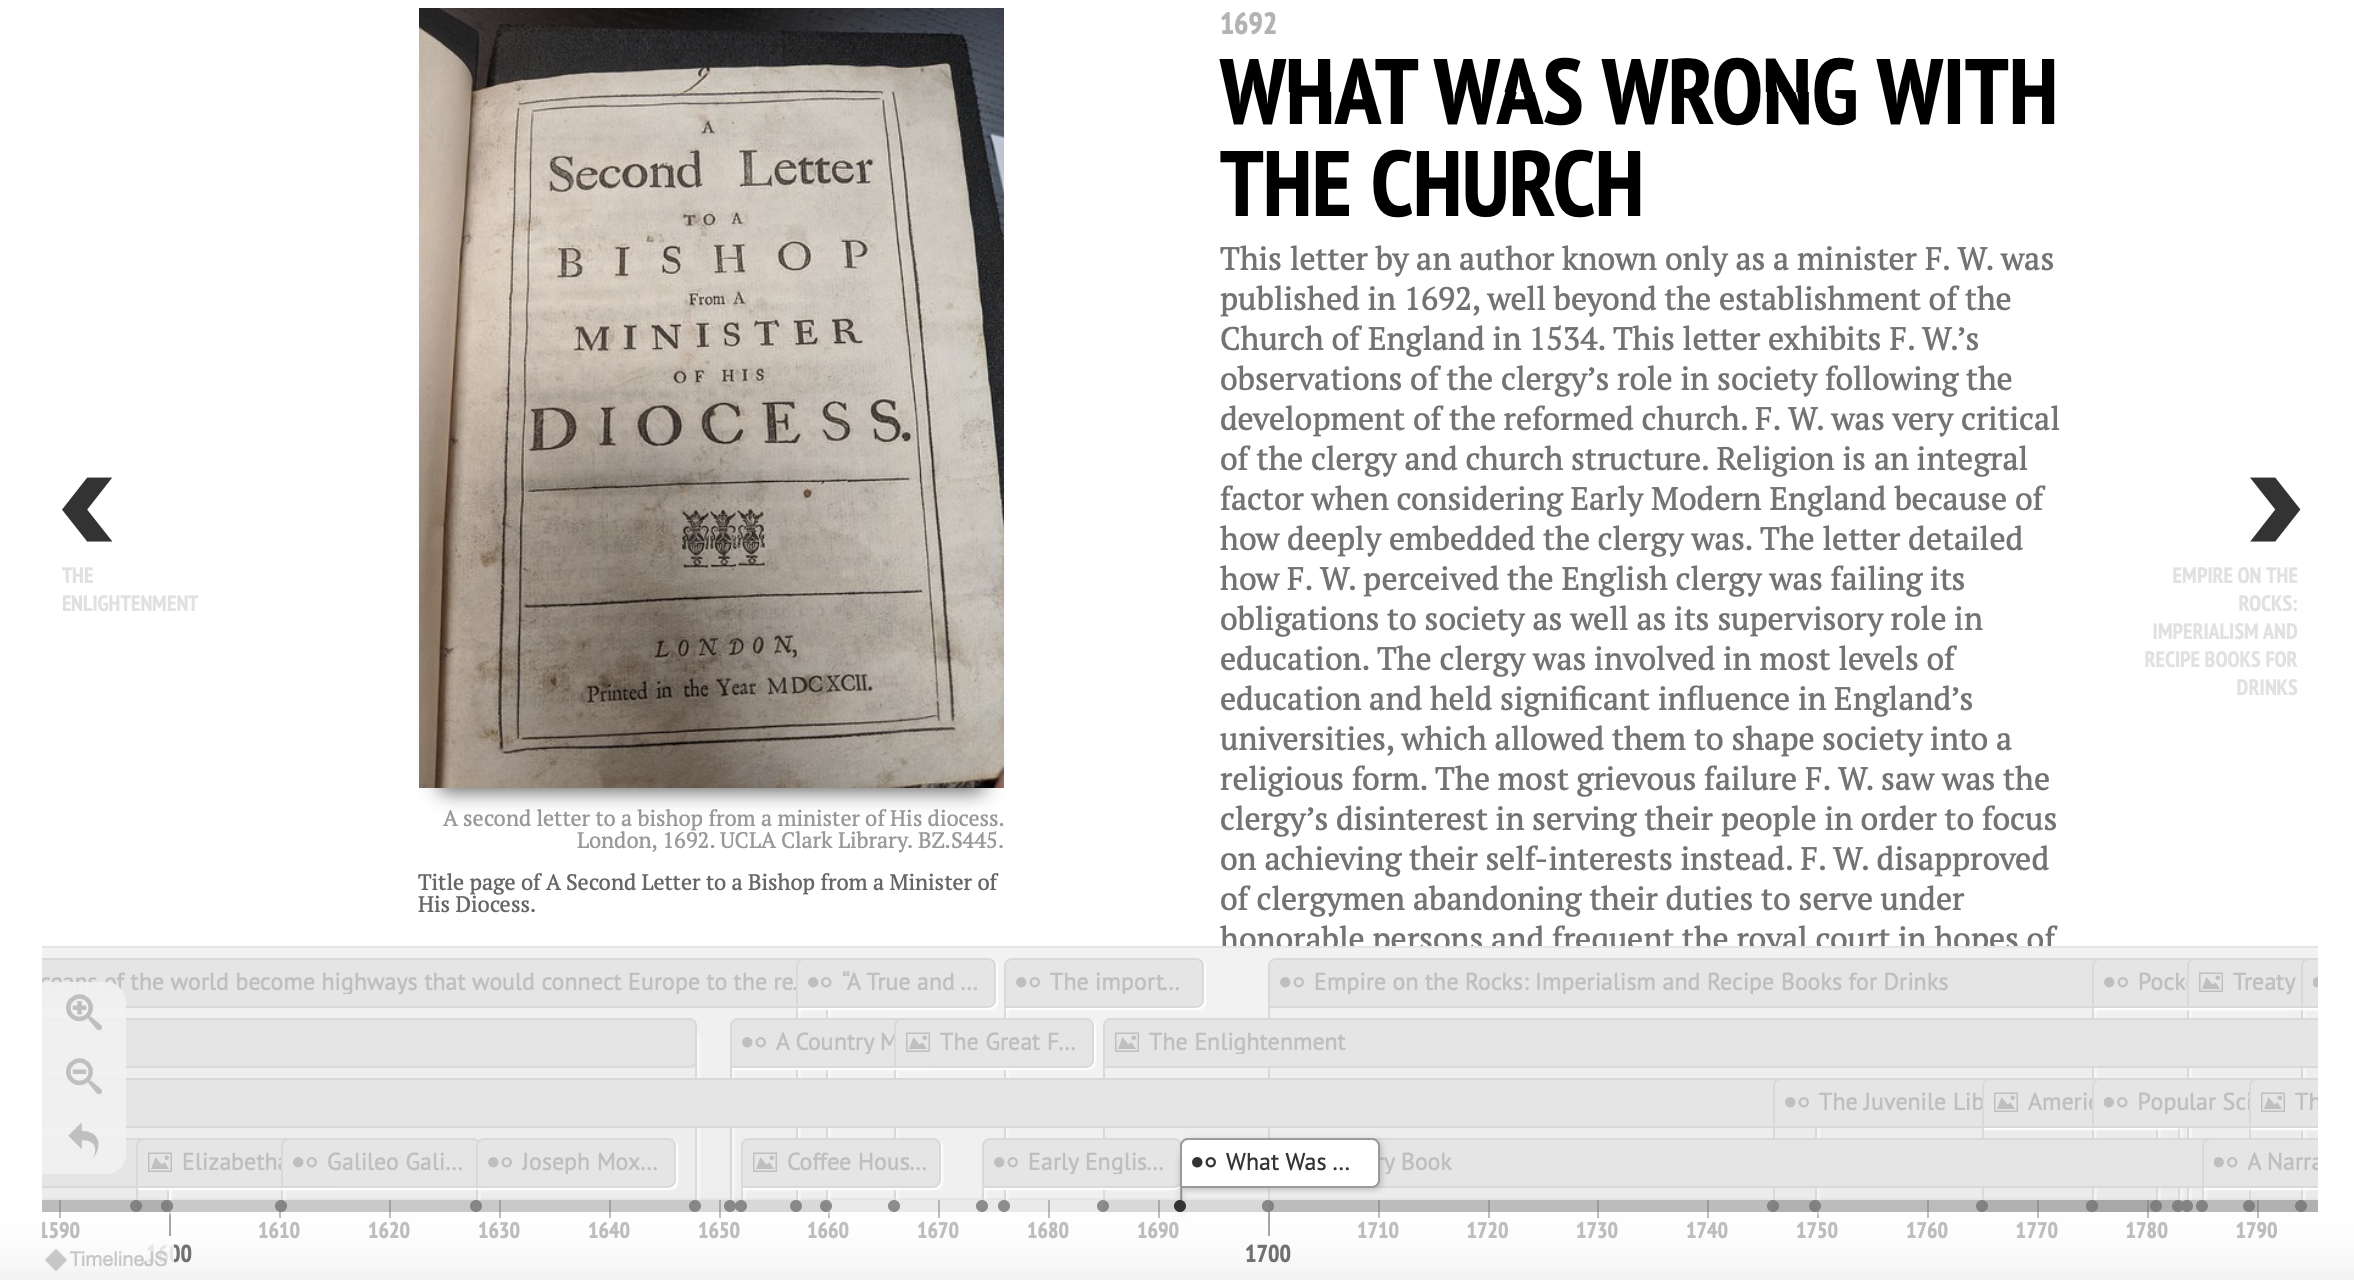 Timeline entry with image of title page of A Second Letter to a Bishop from a Minister of His Diocese.